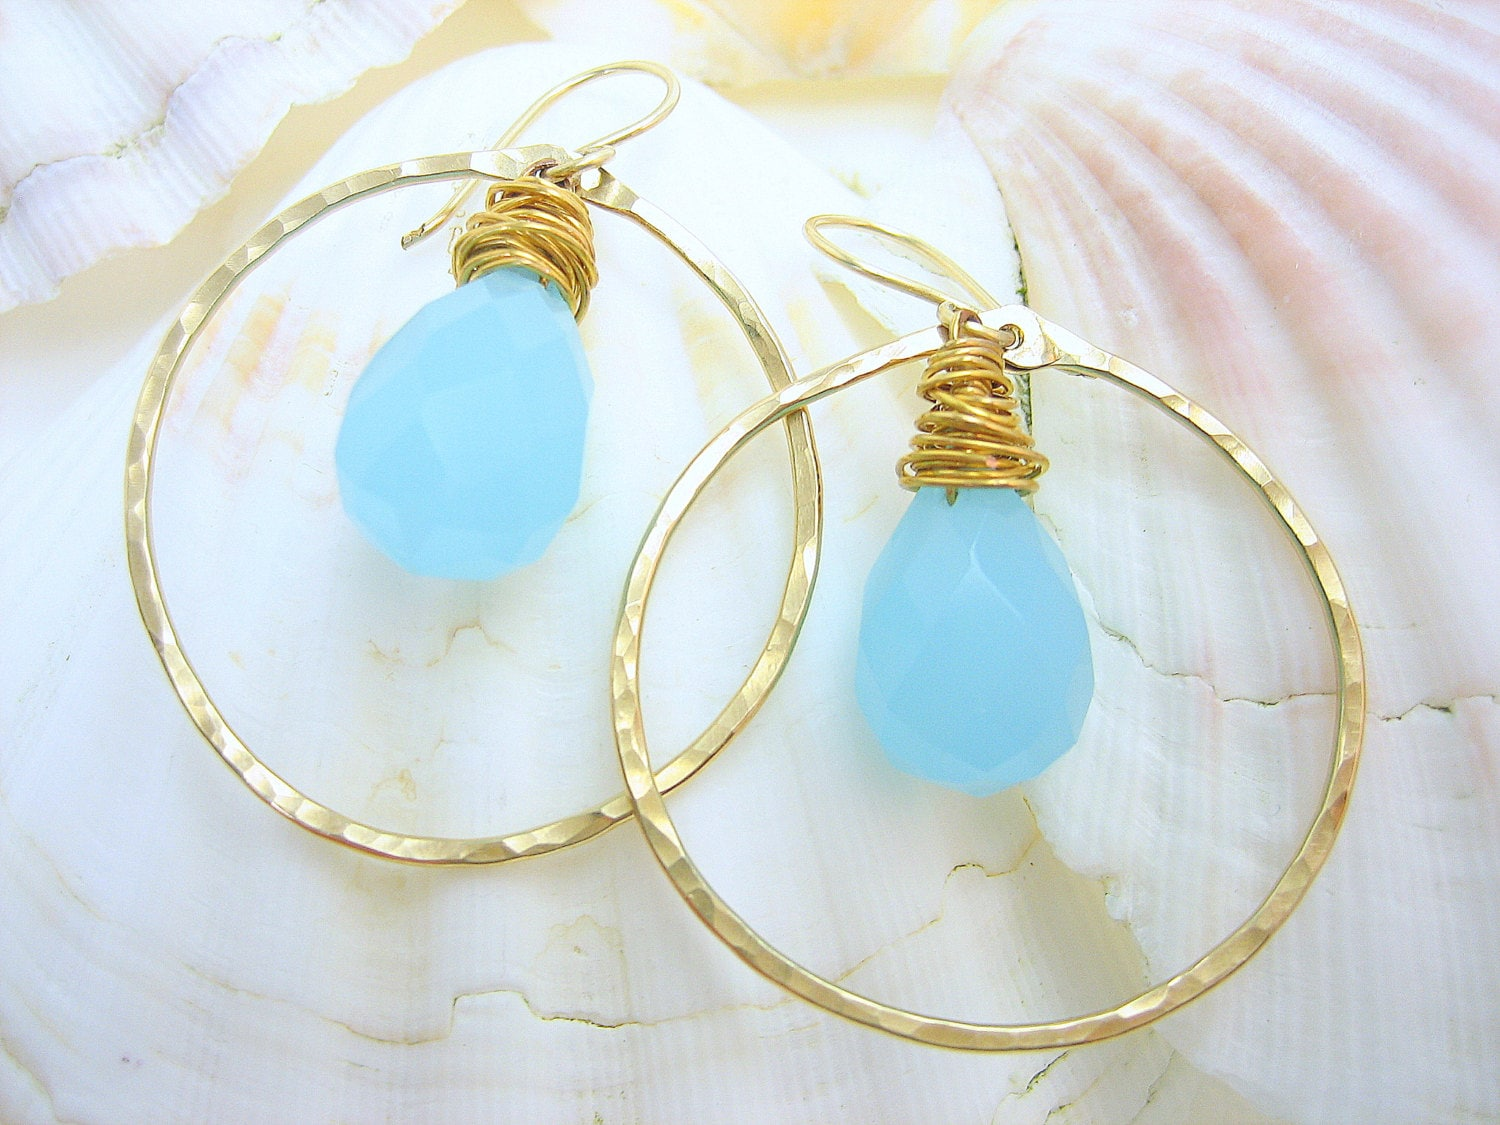 Gypsy hoop hammered gold earrings with aqua blue chalcedony genuine gemstone, dangle open circle artisan handmade hammered gold earrings